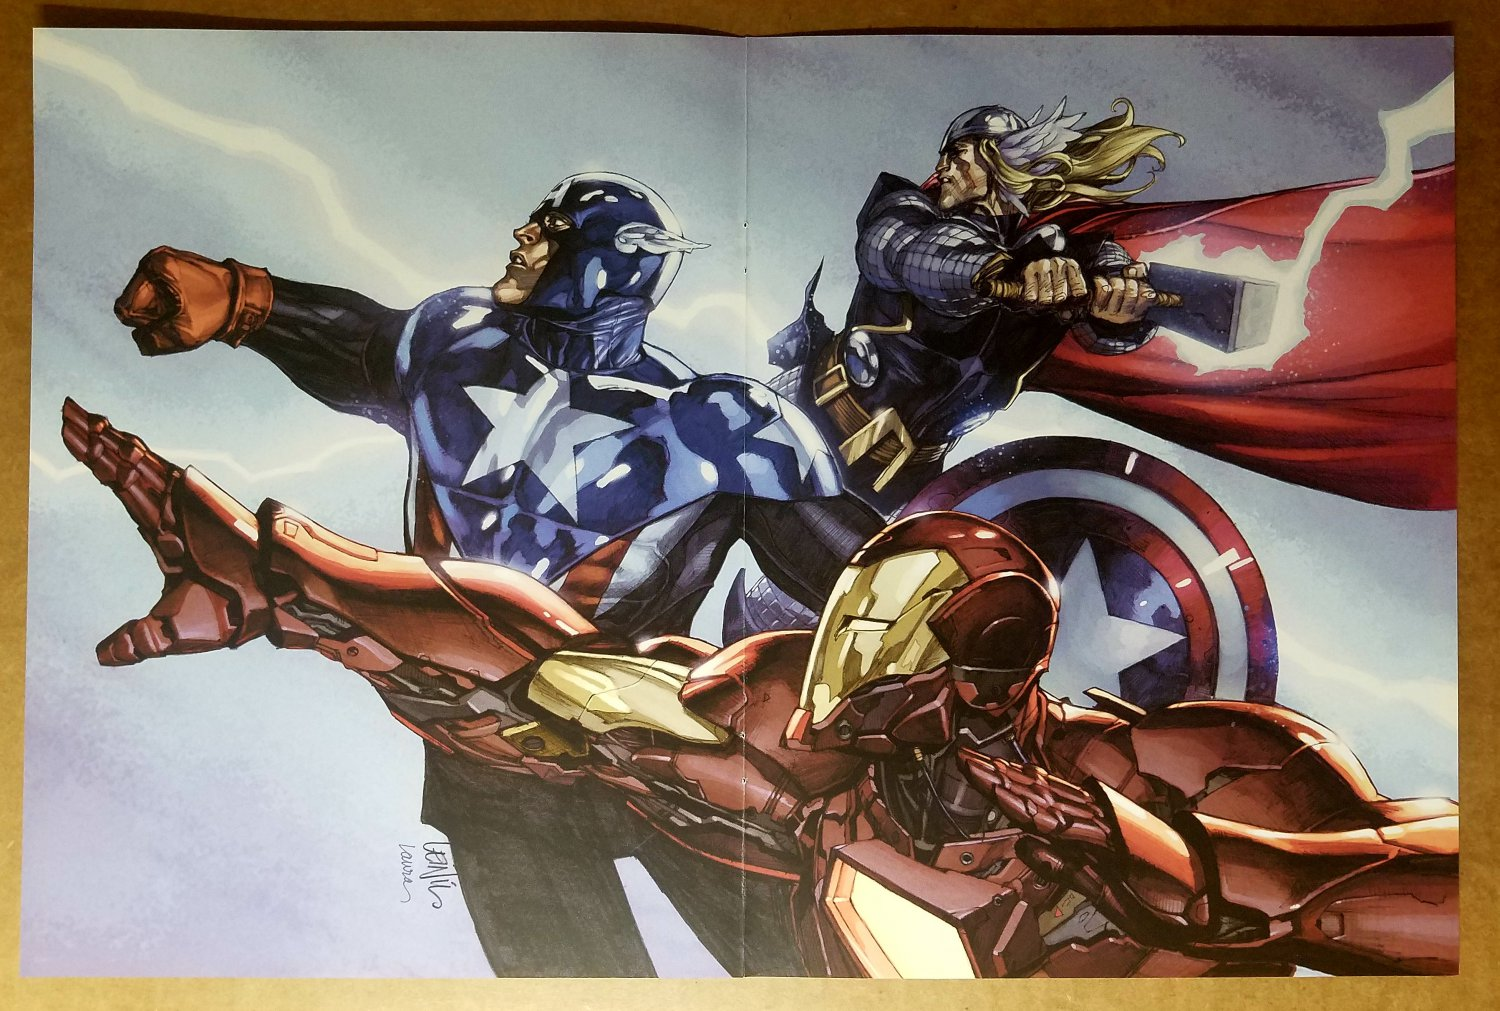 Avengers Thor Captain America Iron Man Marvel Comics Poster by Leinil Yu